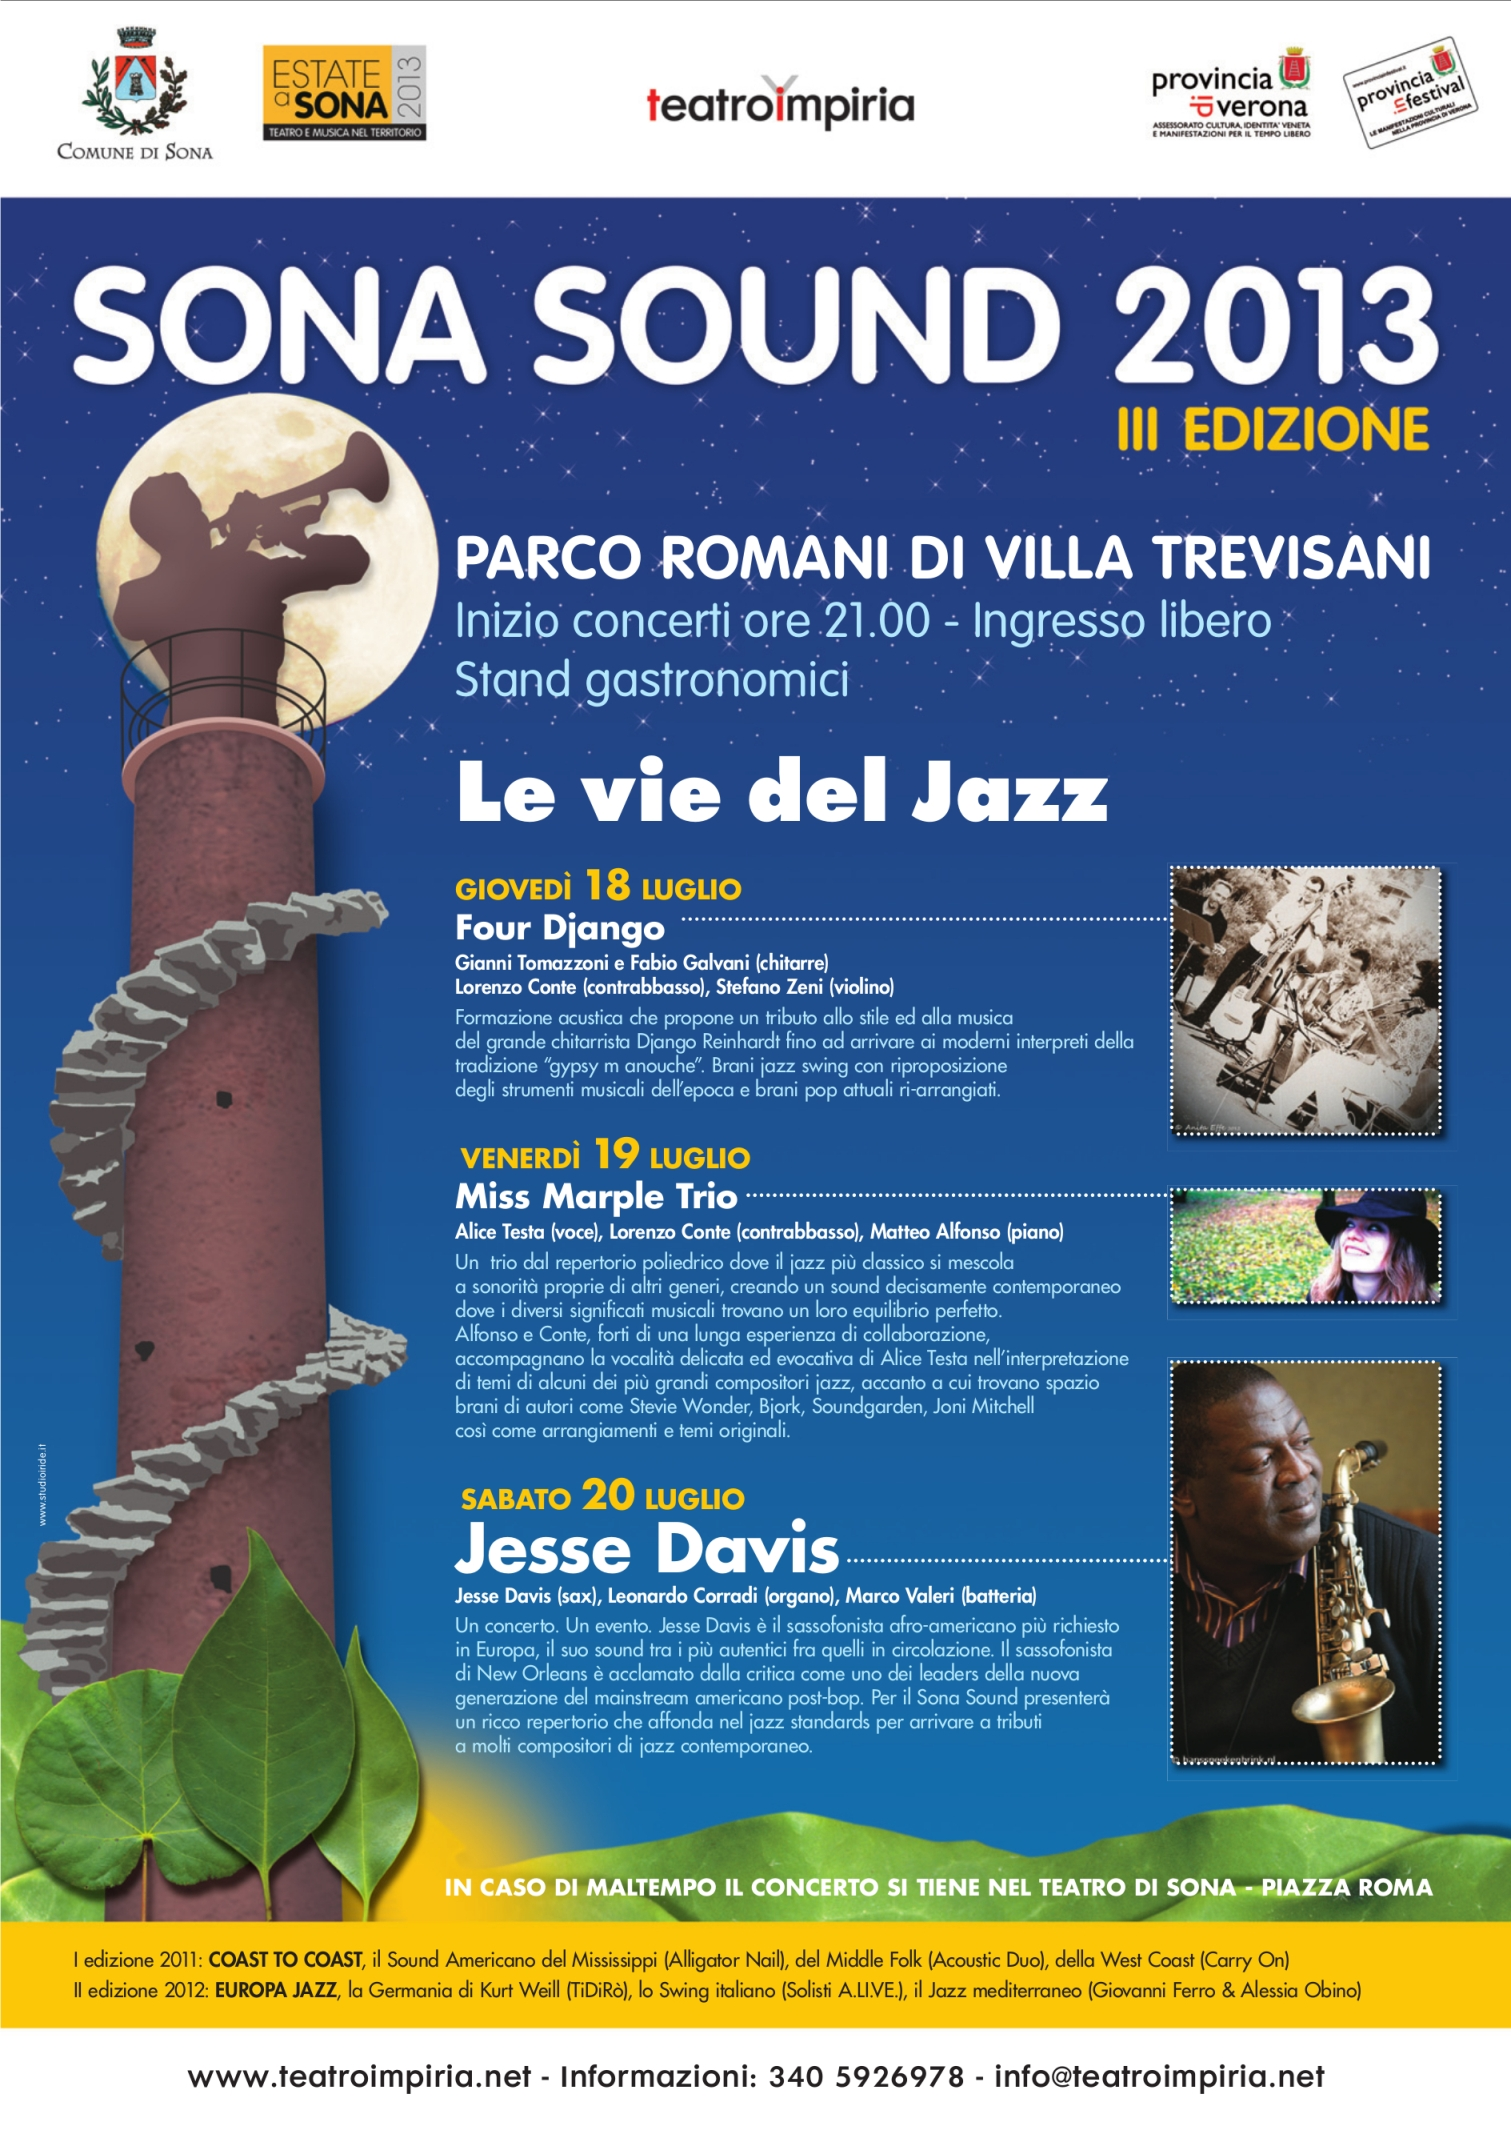 sona-sound-music-jazz-impiria-verona-castelletti